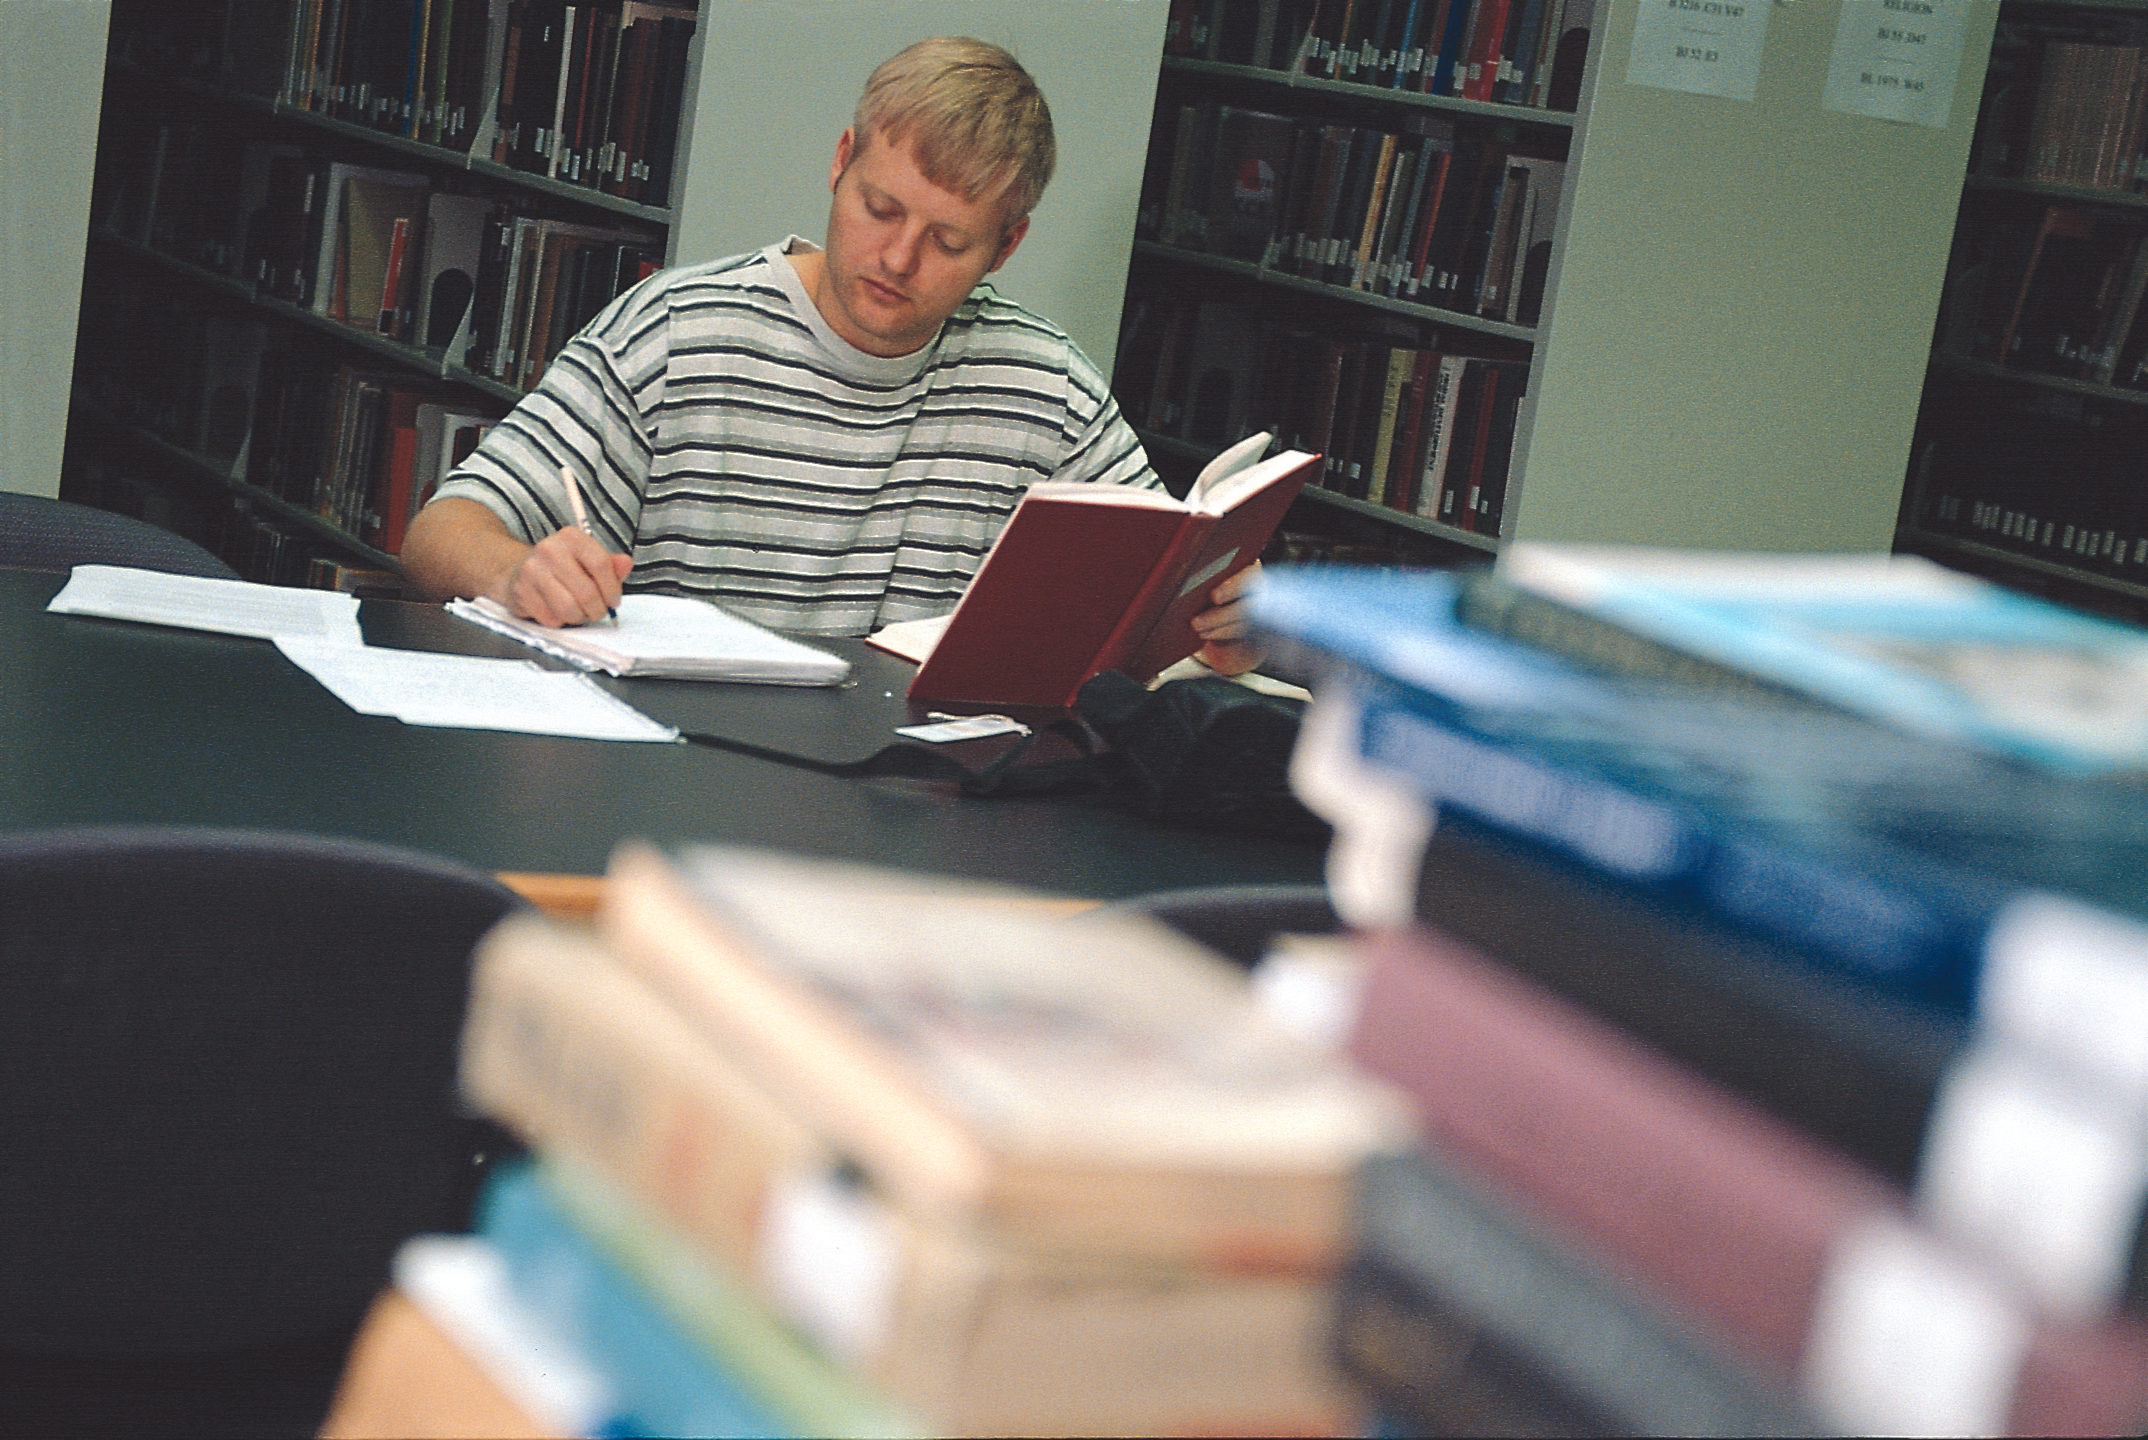 A man studying in library